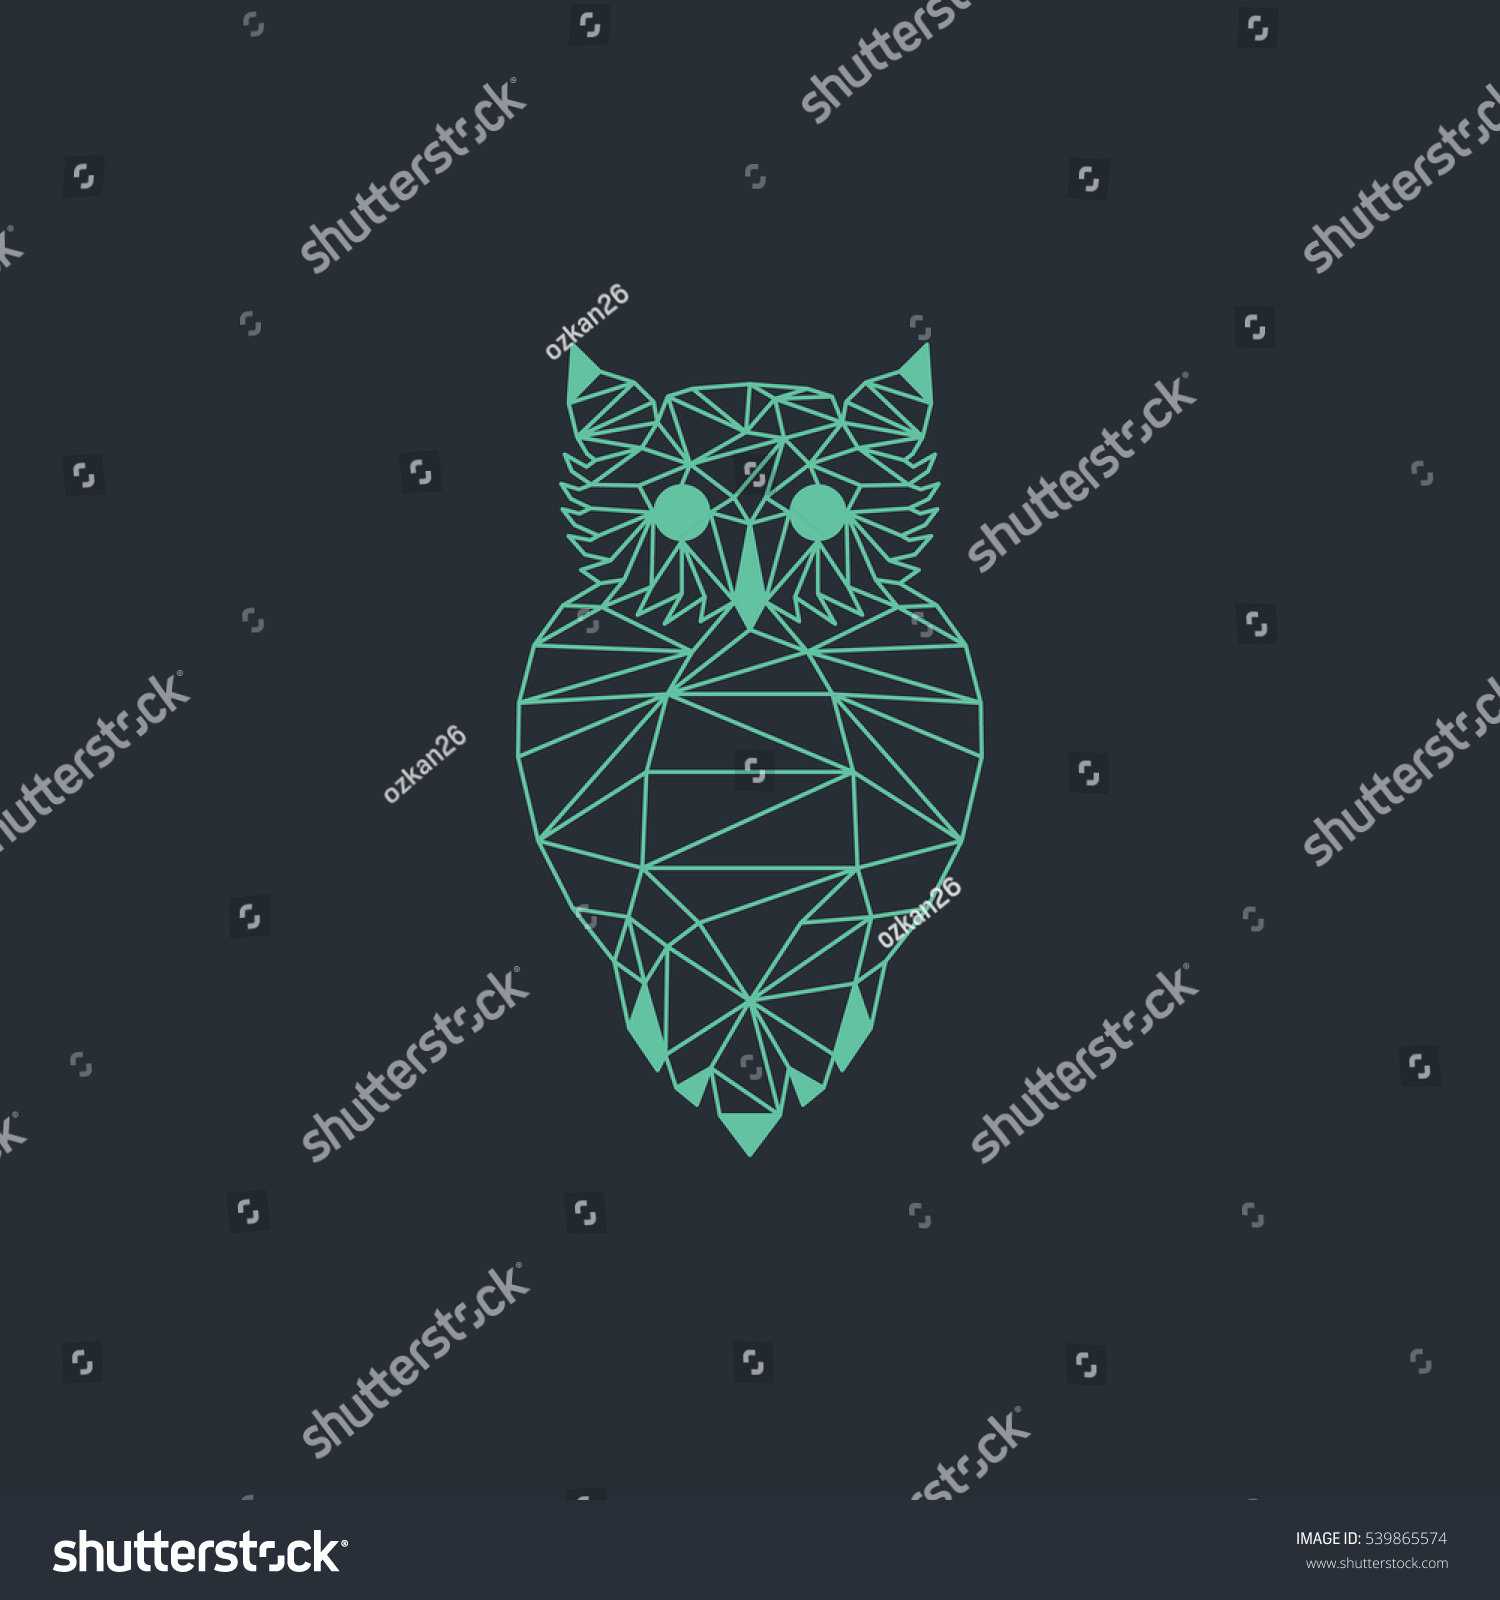 Light Green Origami Owl Vector Design Stock Vector ... - photo#9